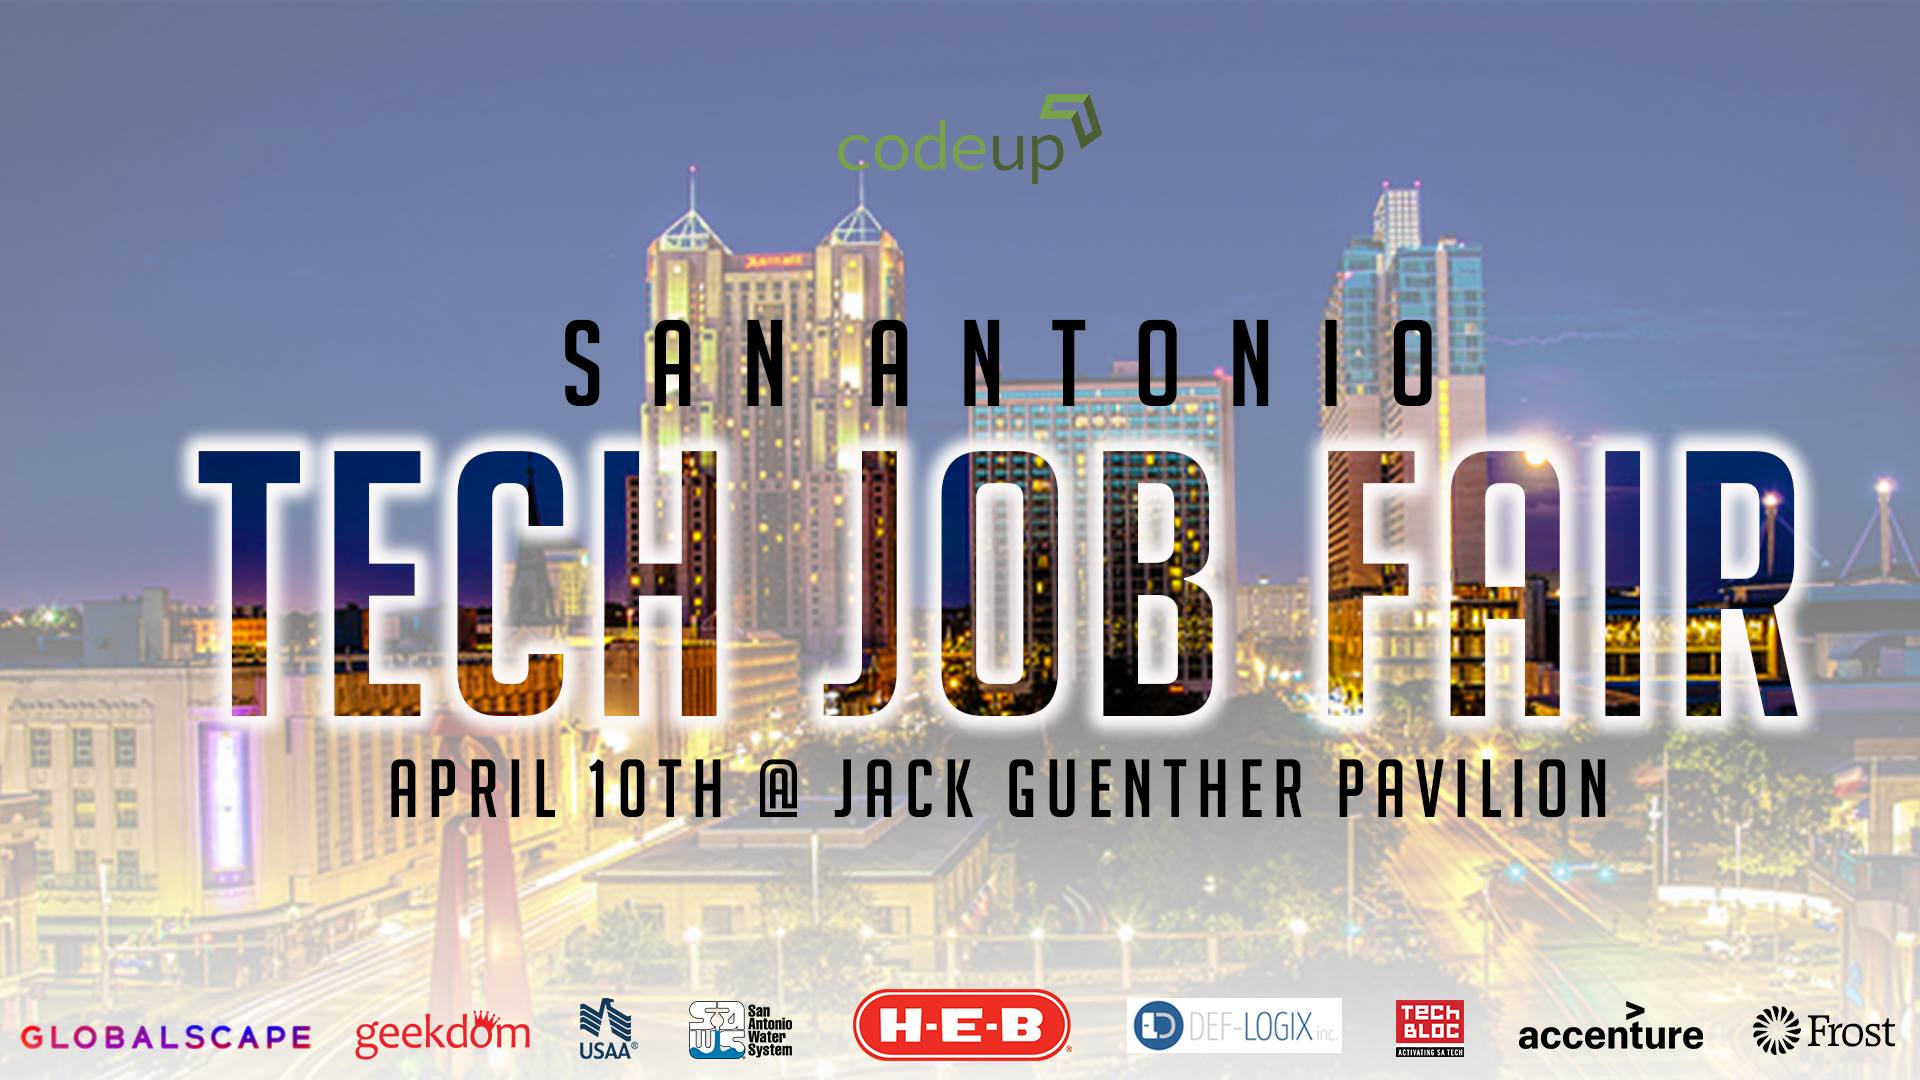 San Antonio Tech Job Fair